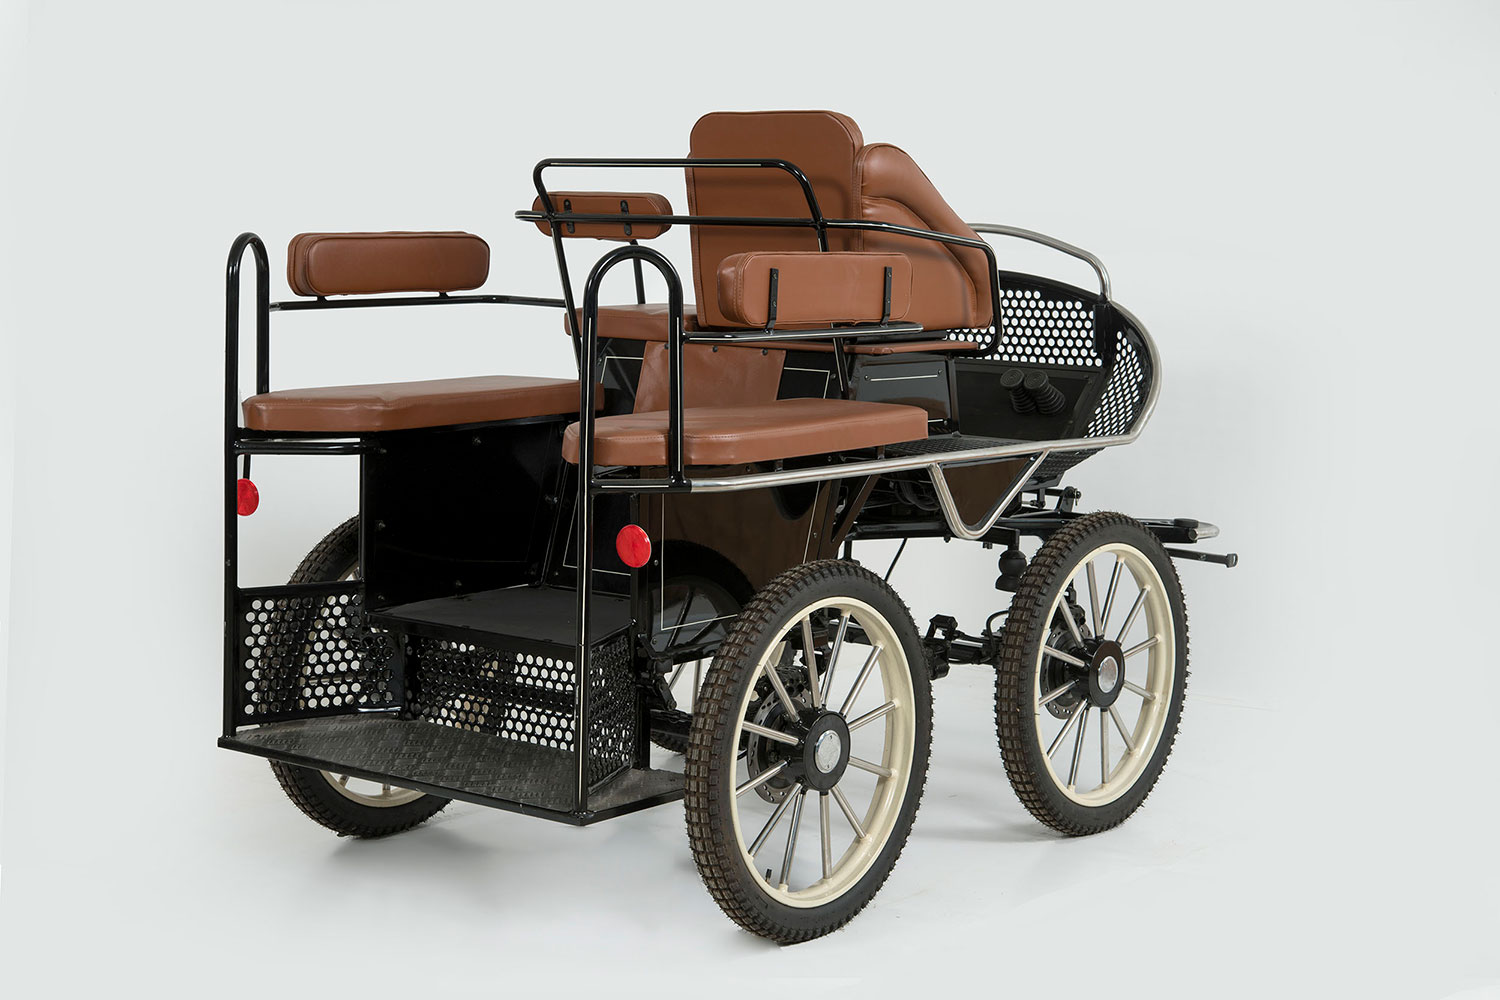 The Trotter Horse Carriage